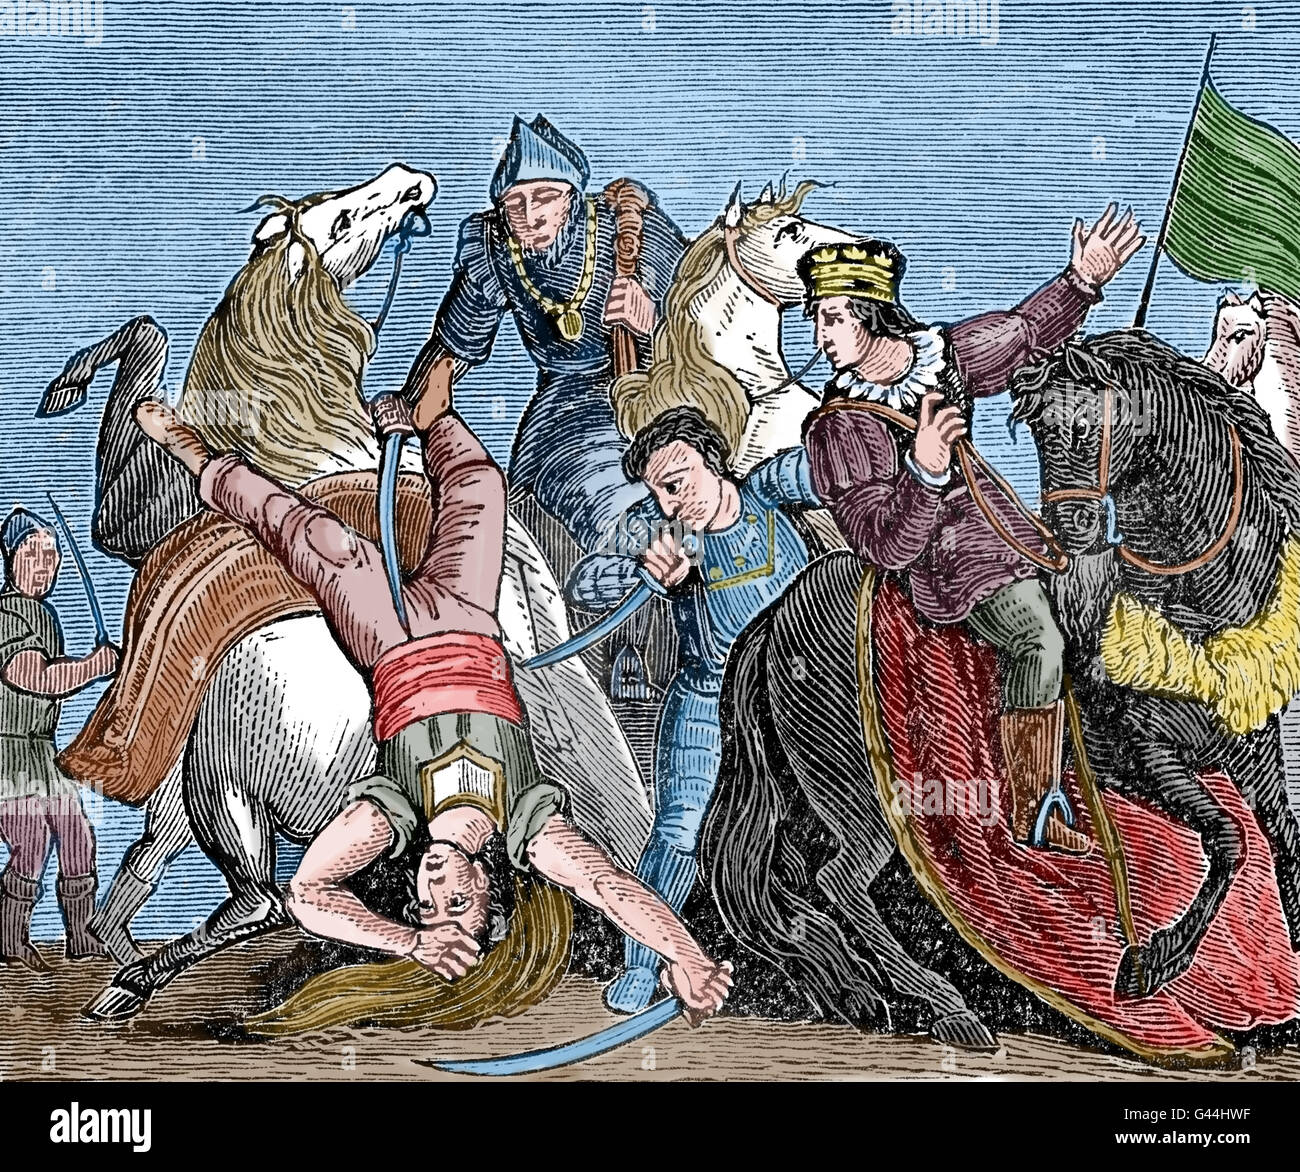 How peasants killed their children before the revolution